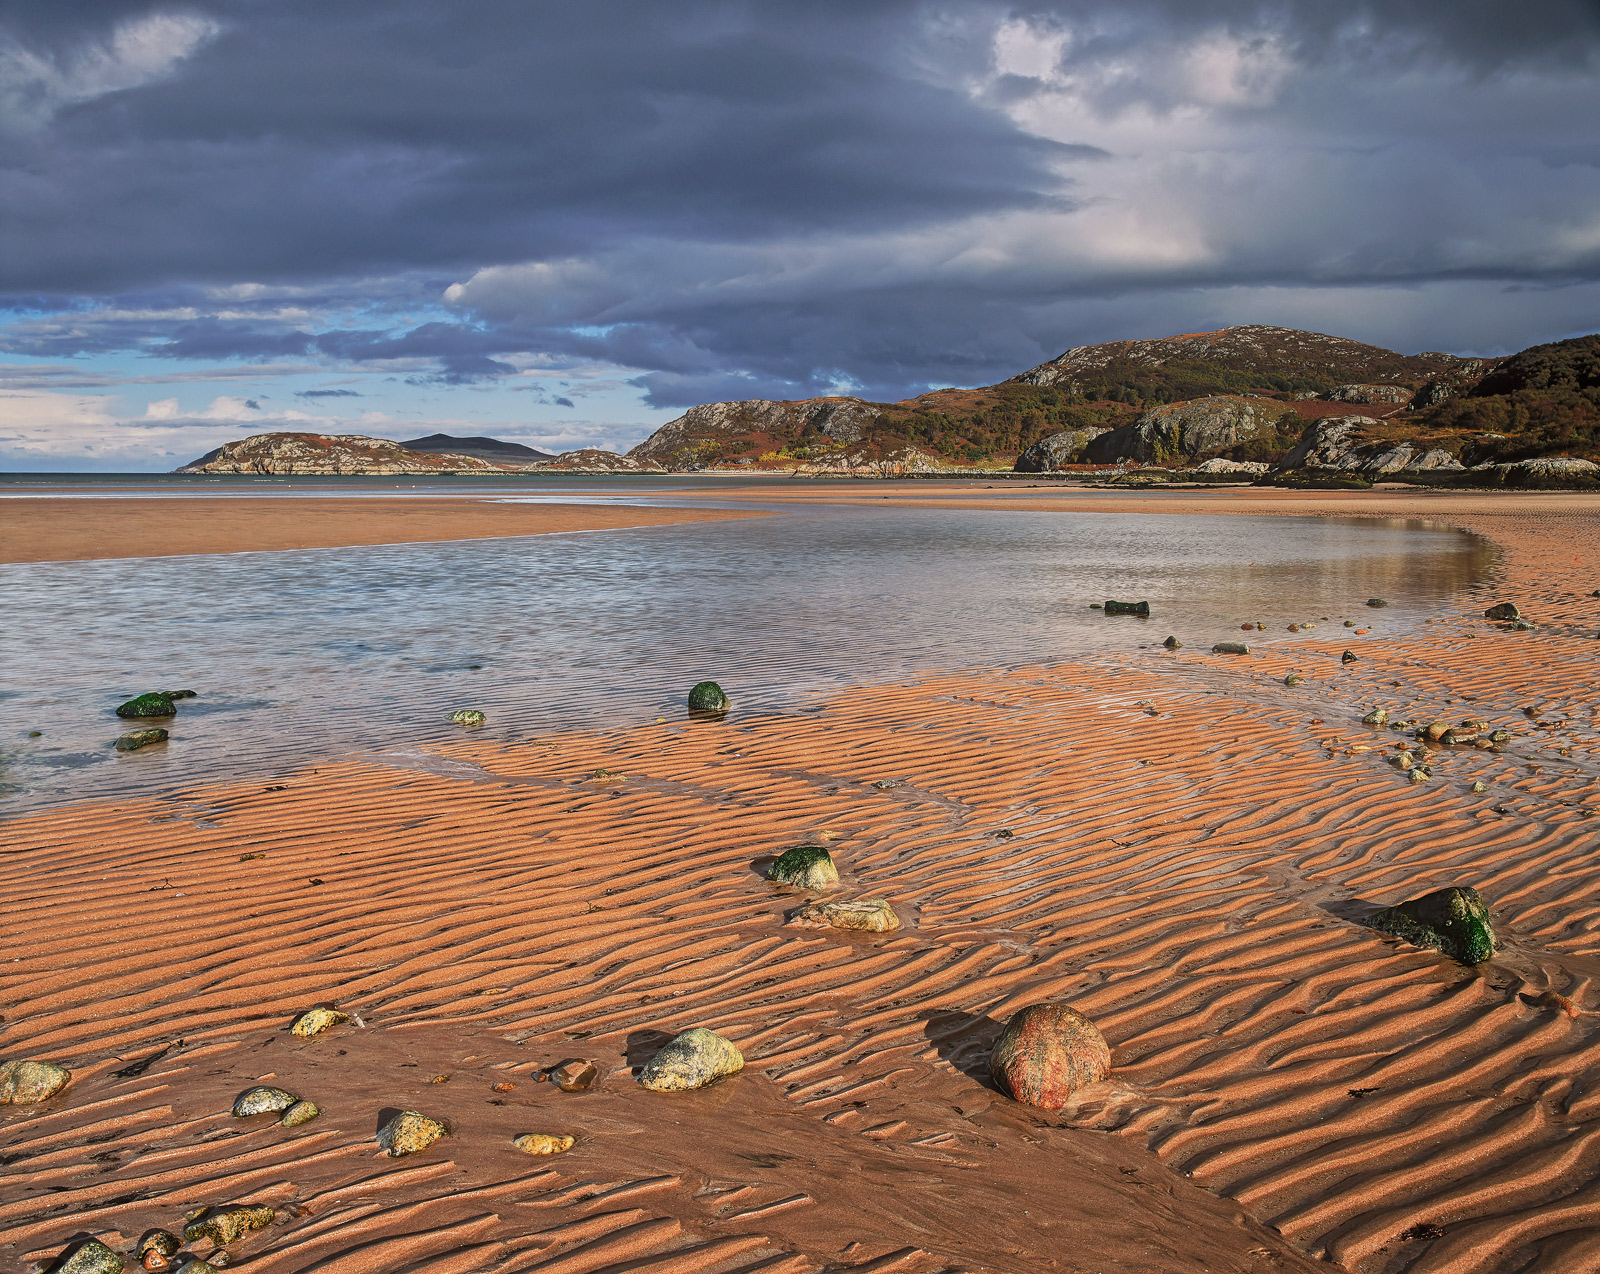 One of the most beautiful stretches of the west coast of Scotland.  Gruinard Bay at low tide shows a red sand beach often furrowed...